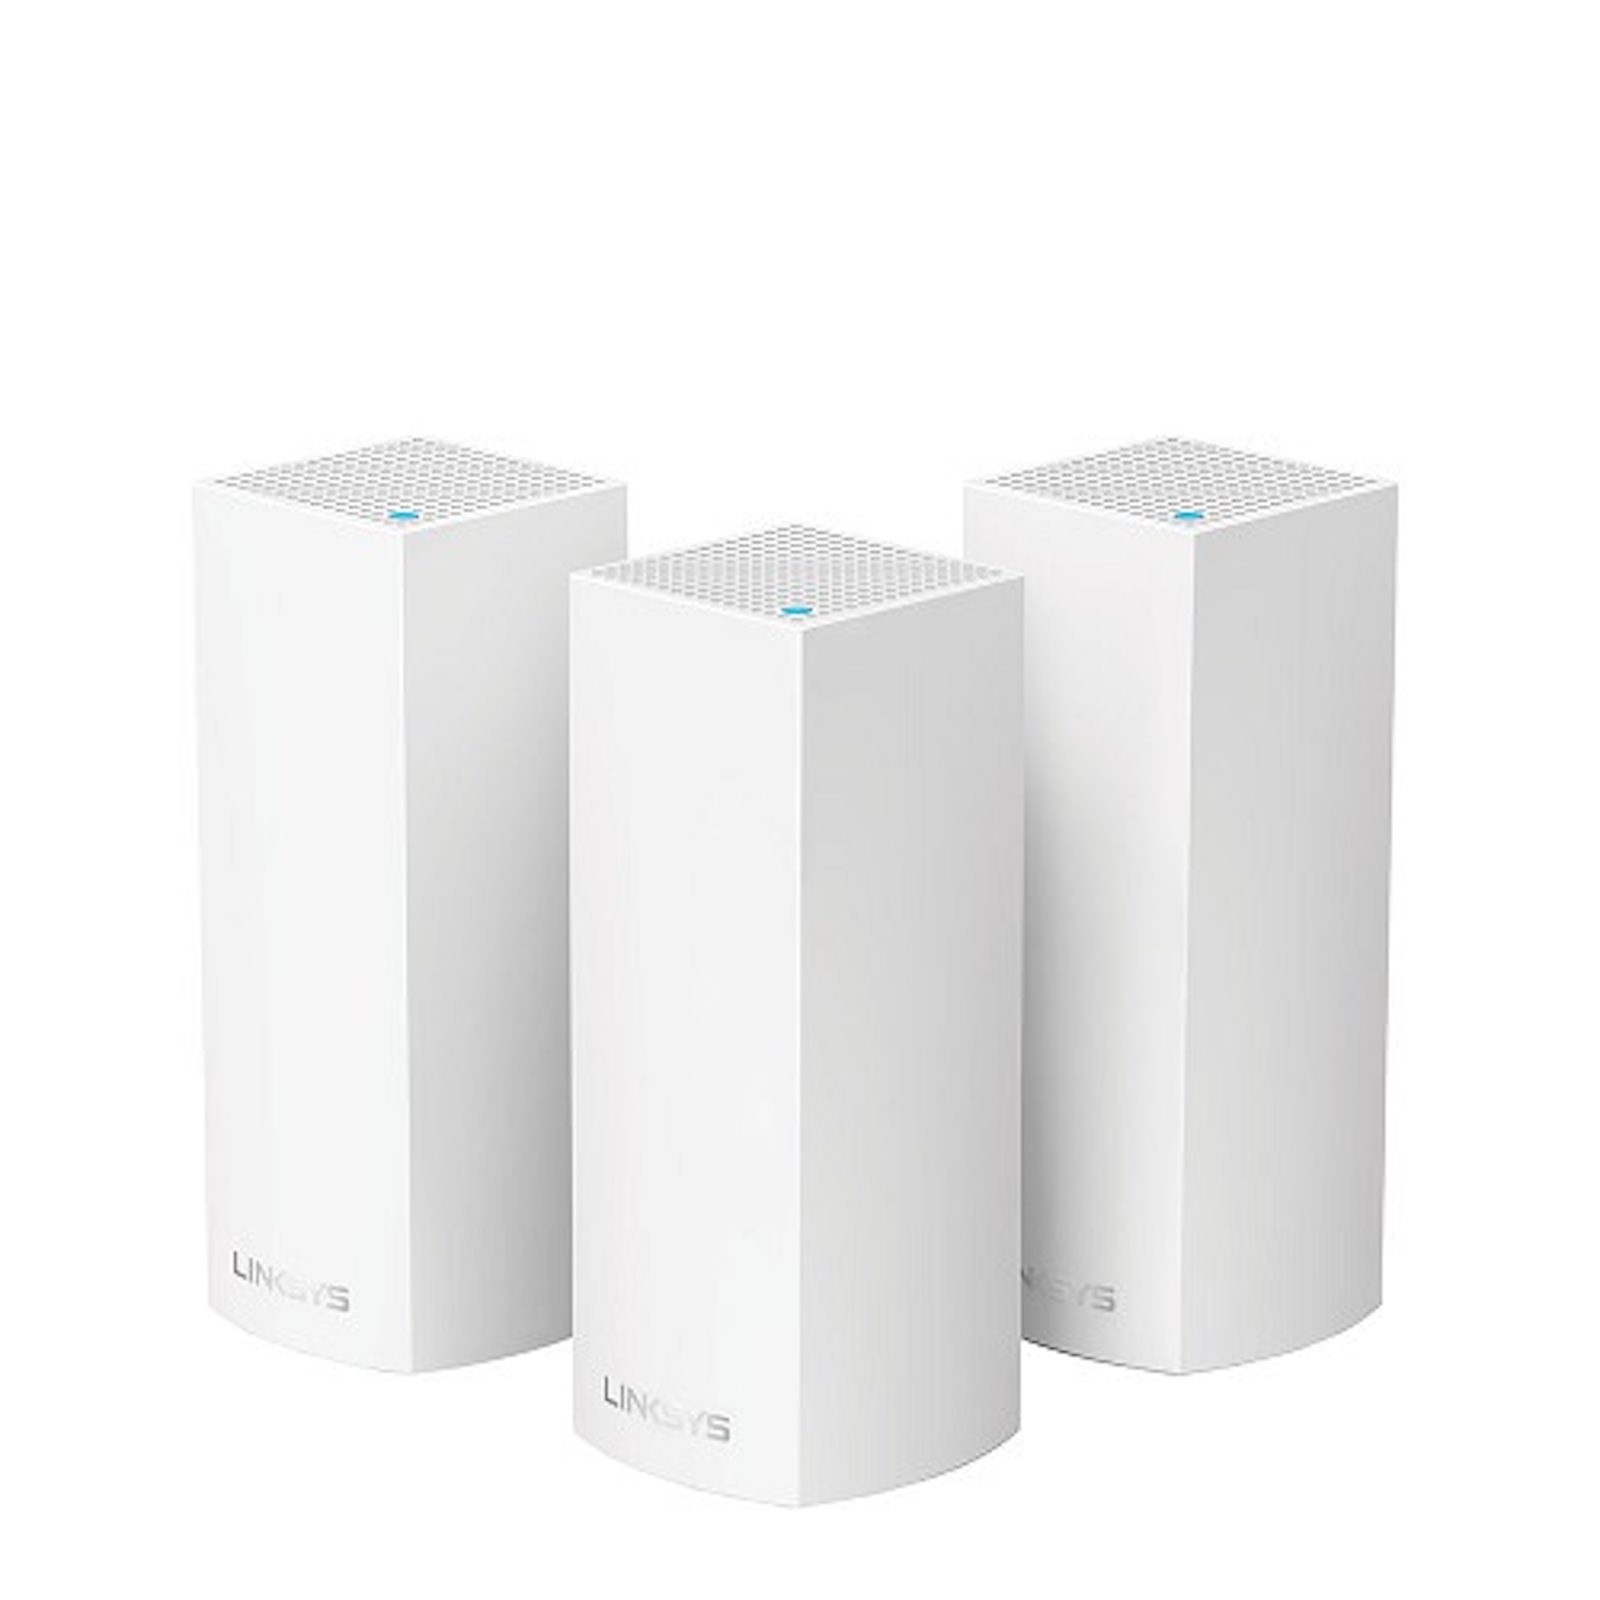 Linksys Velop WiFi Router 2